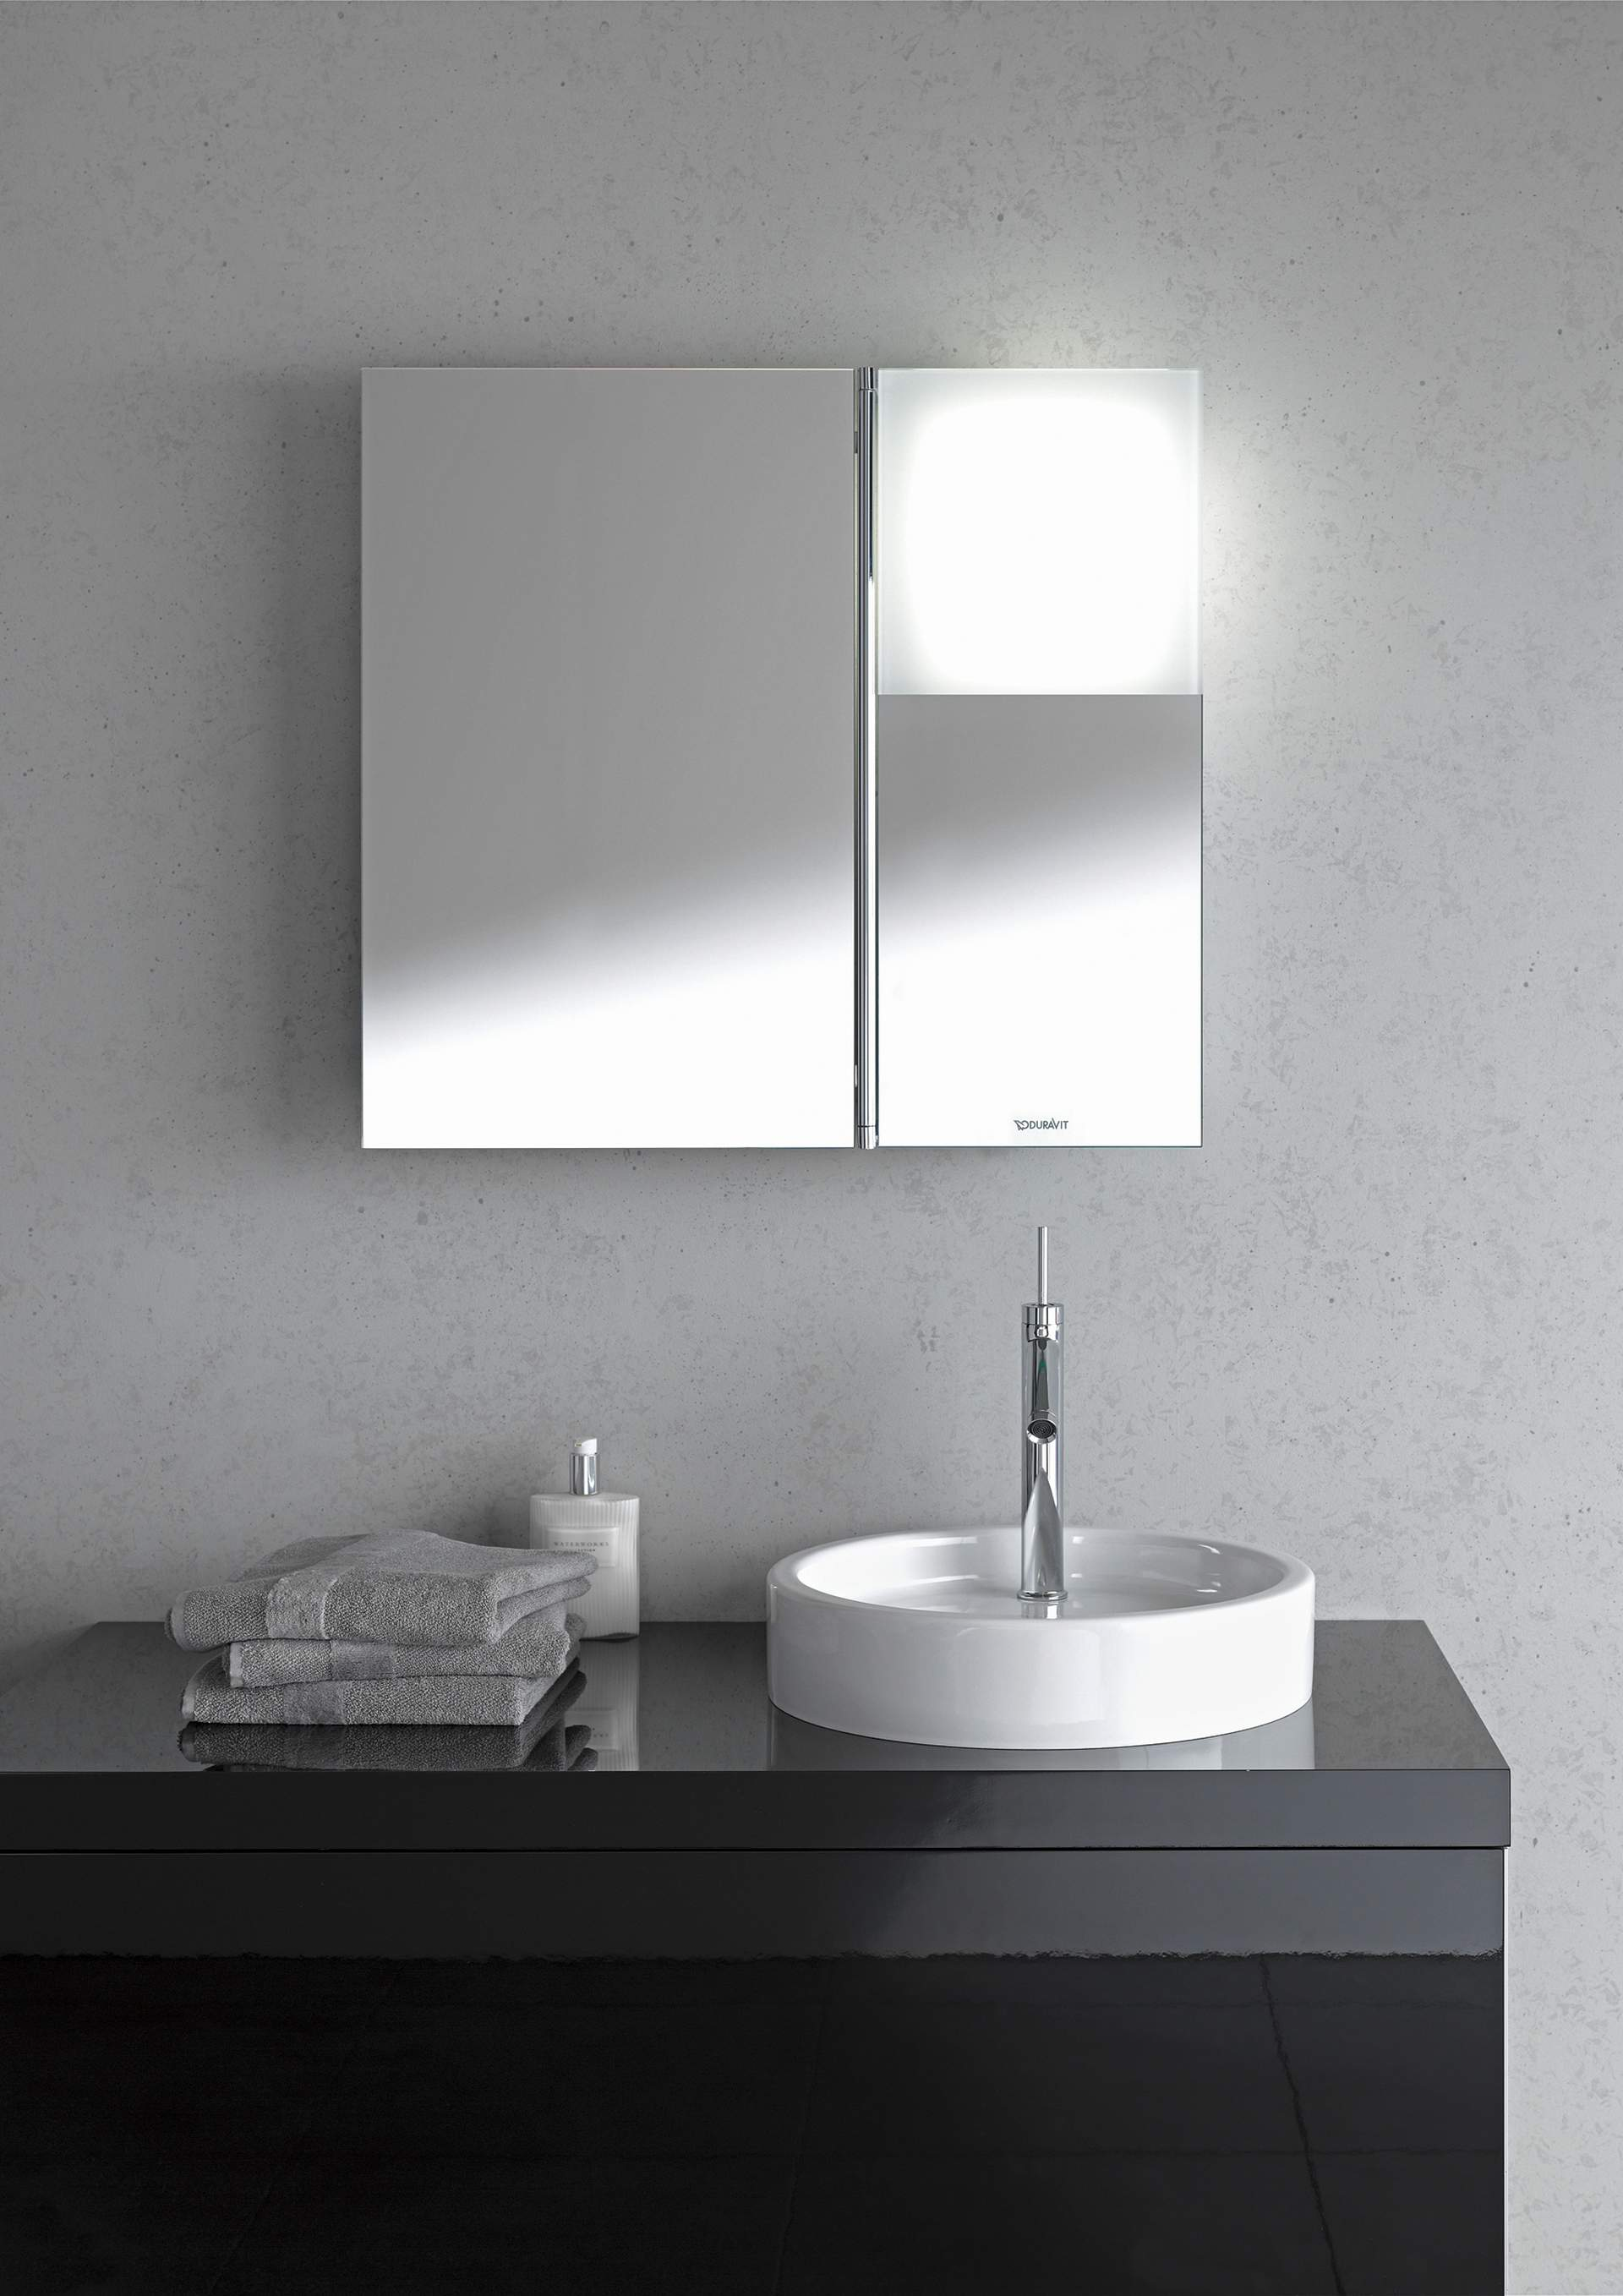 armoires de toilette miroirs avec clairage duravit. Black Bedroom Furniture Sets. Home Design Ideas